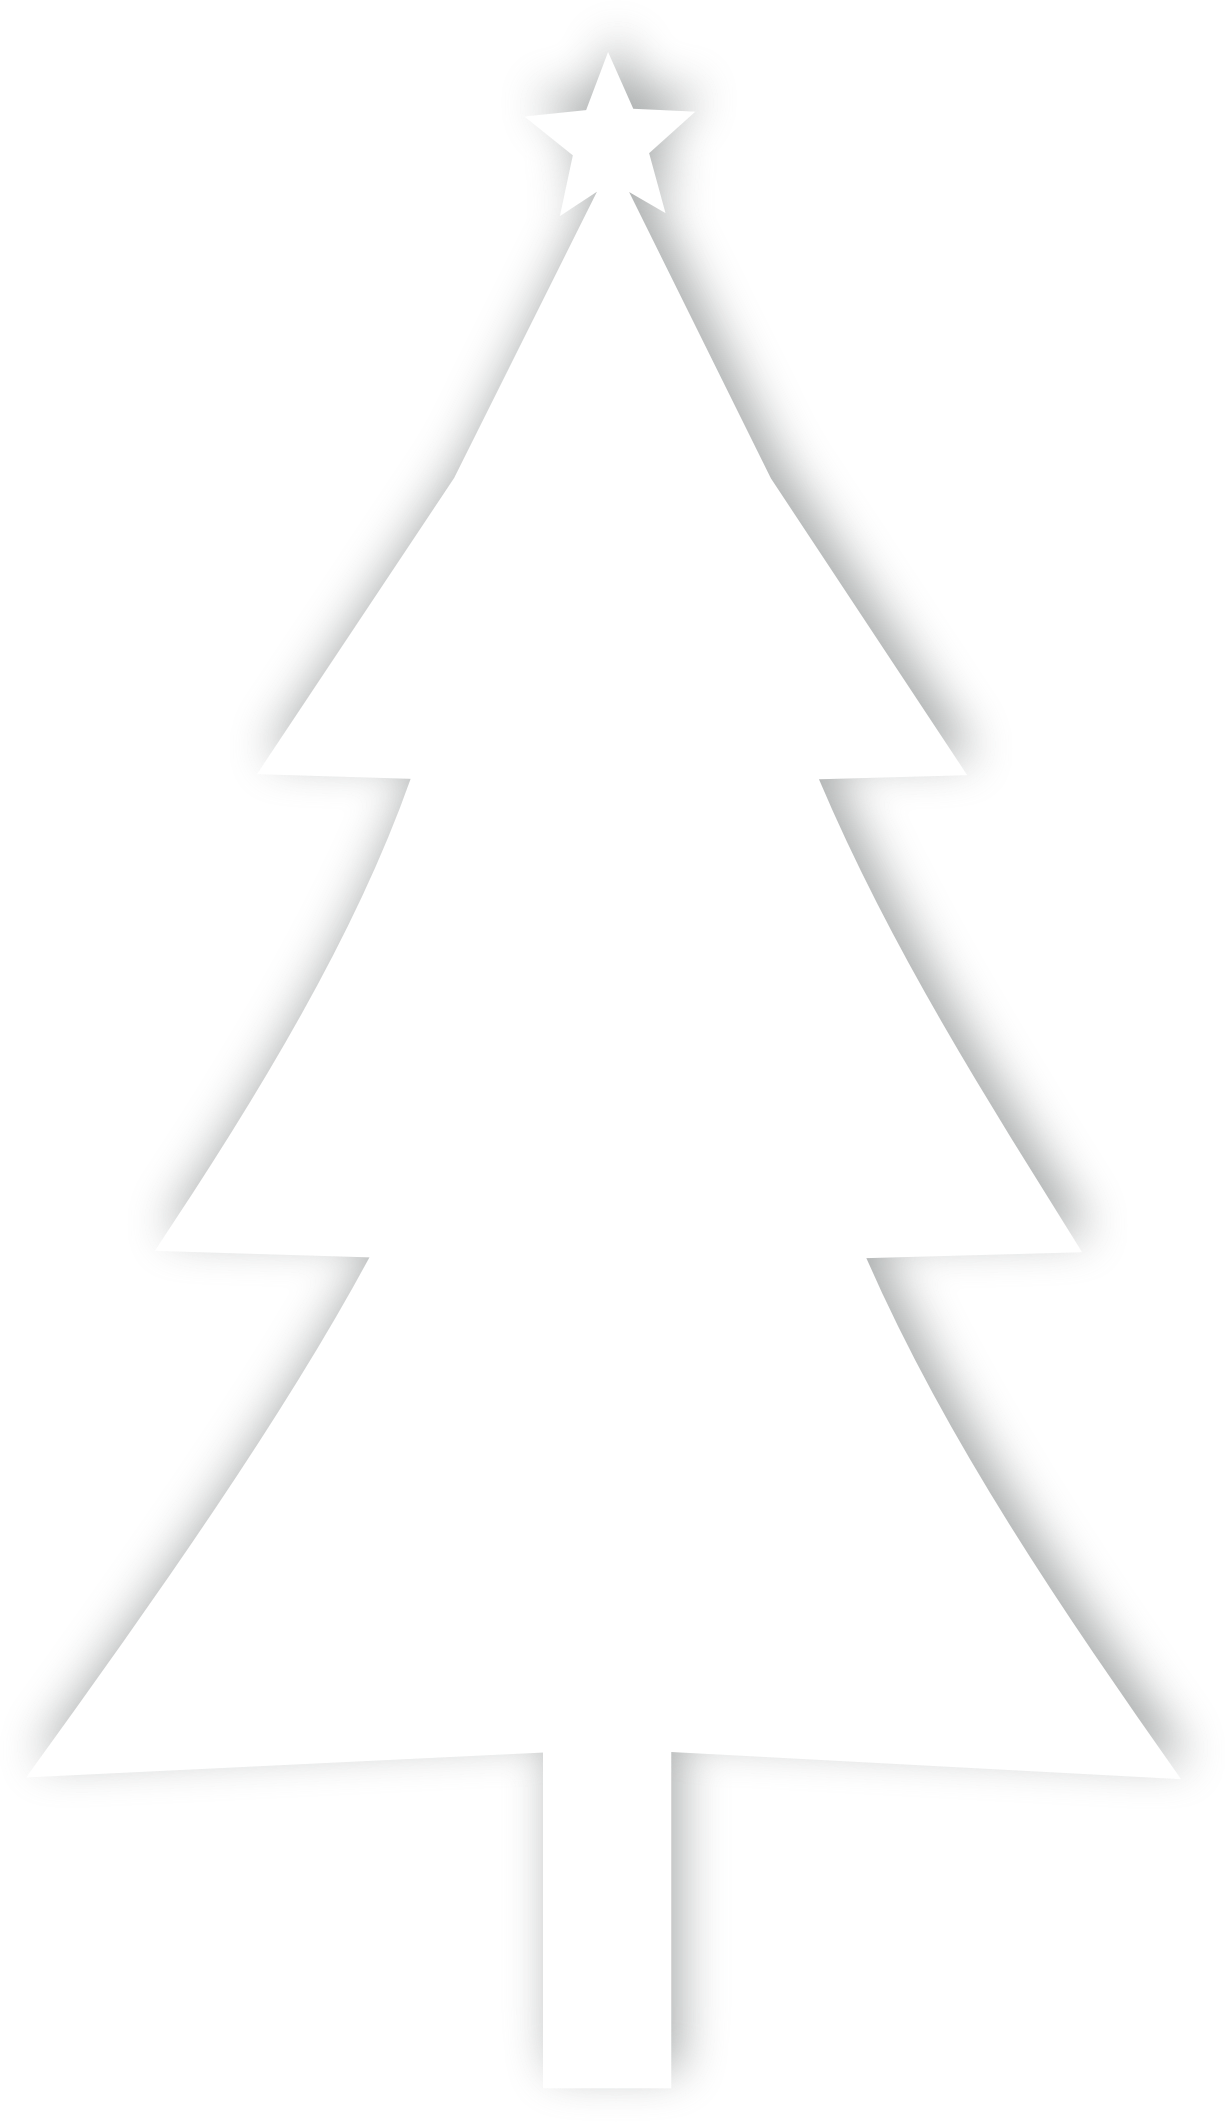 Library of triangle christmas tree picture transparent ...